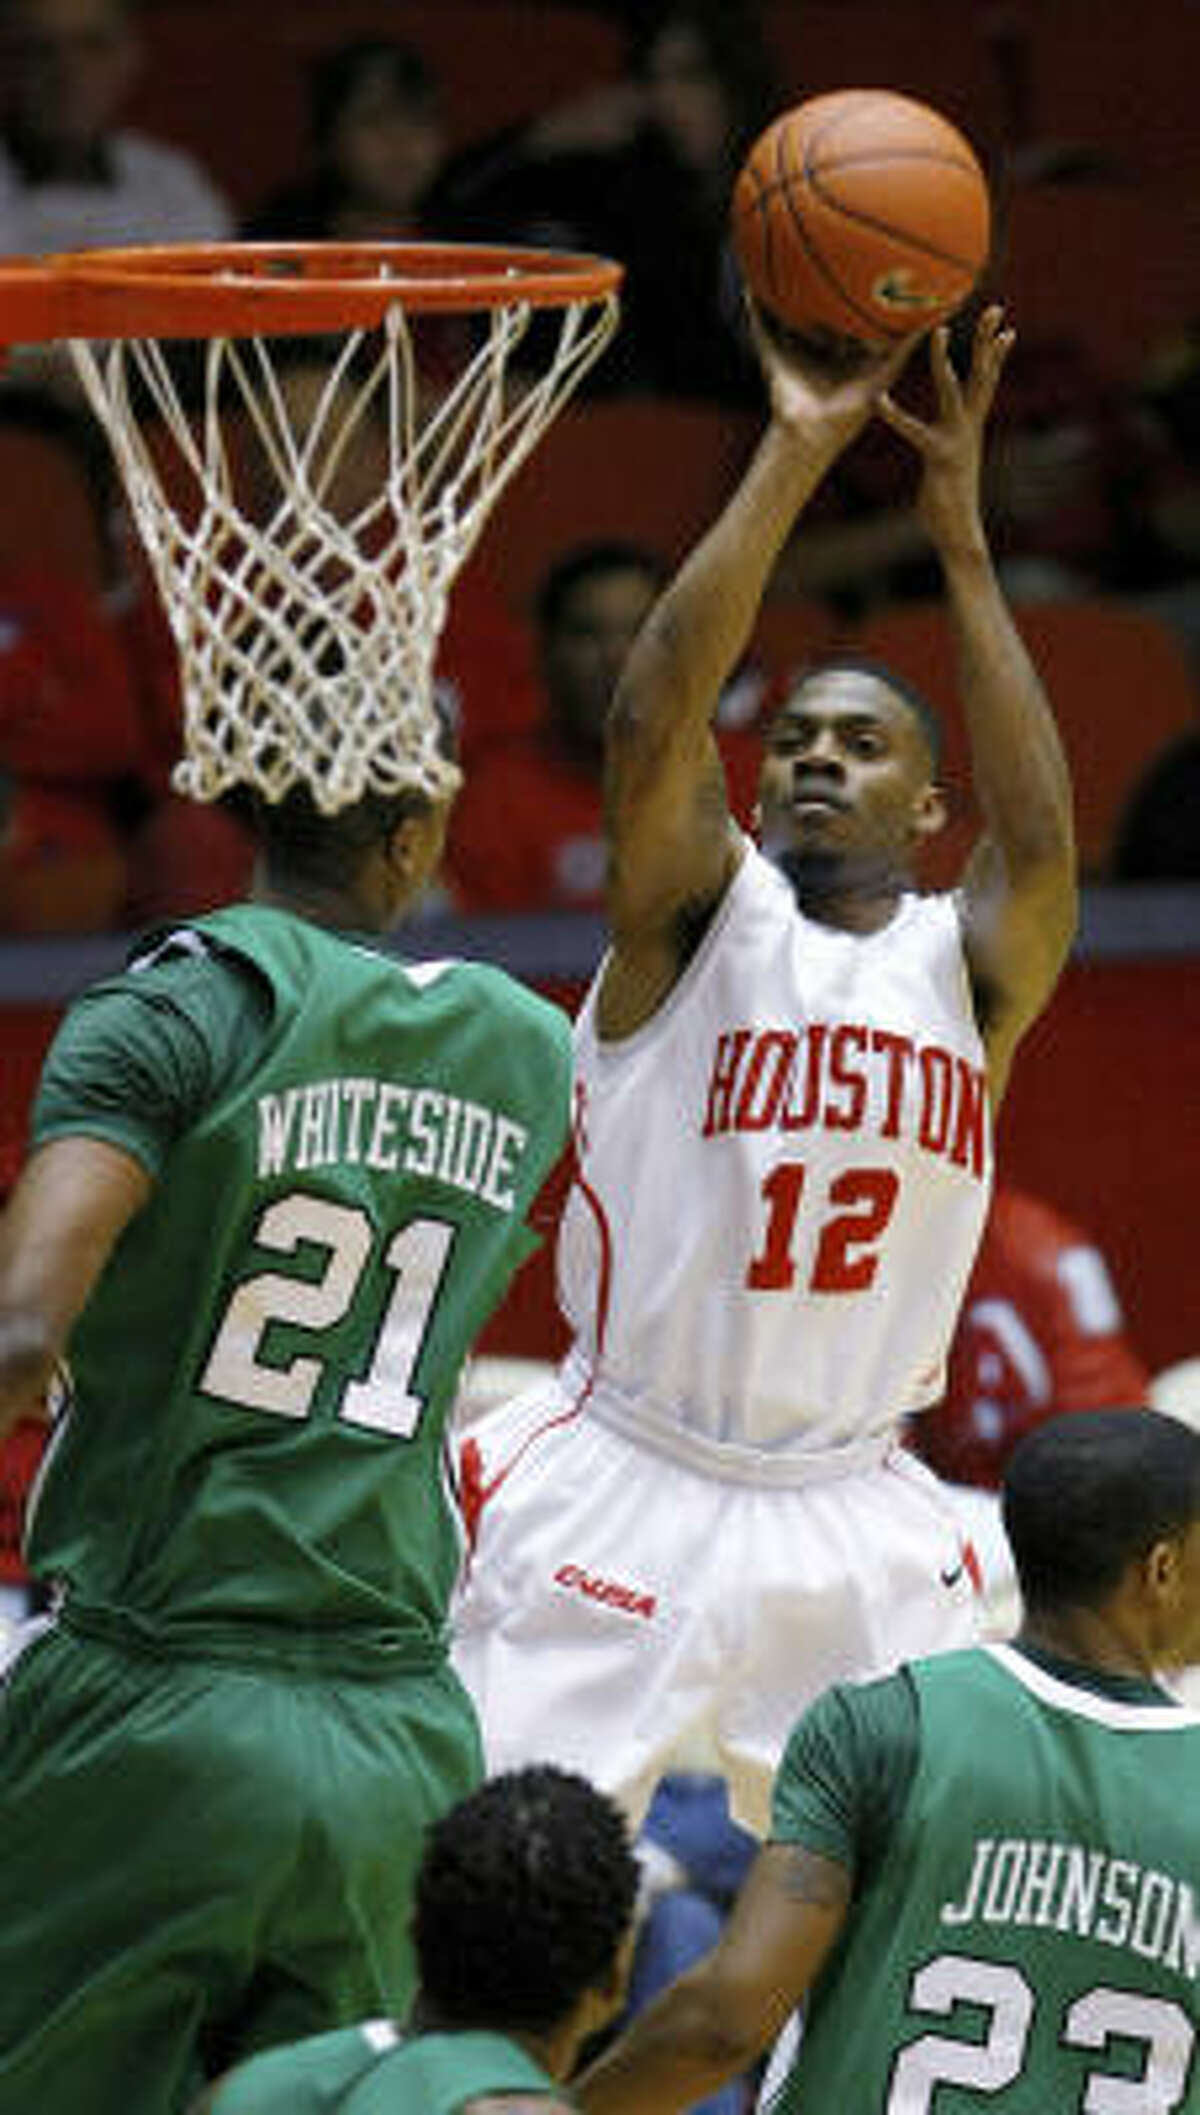 UH guard Aubrey Coleman pulls up for a jumper as Marshall forward Hassan Whiteside and the defense collapse on him in the second half.